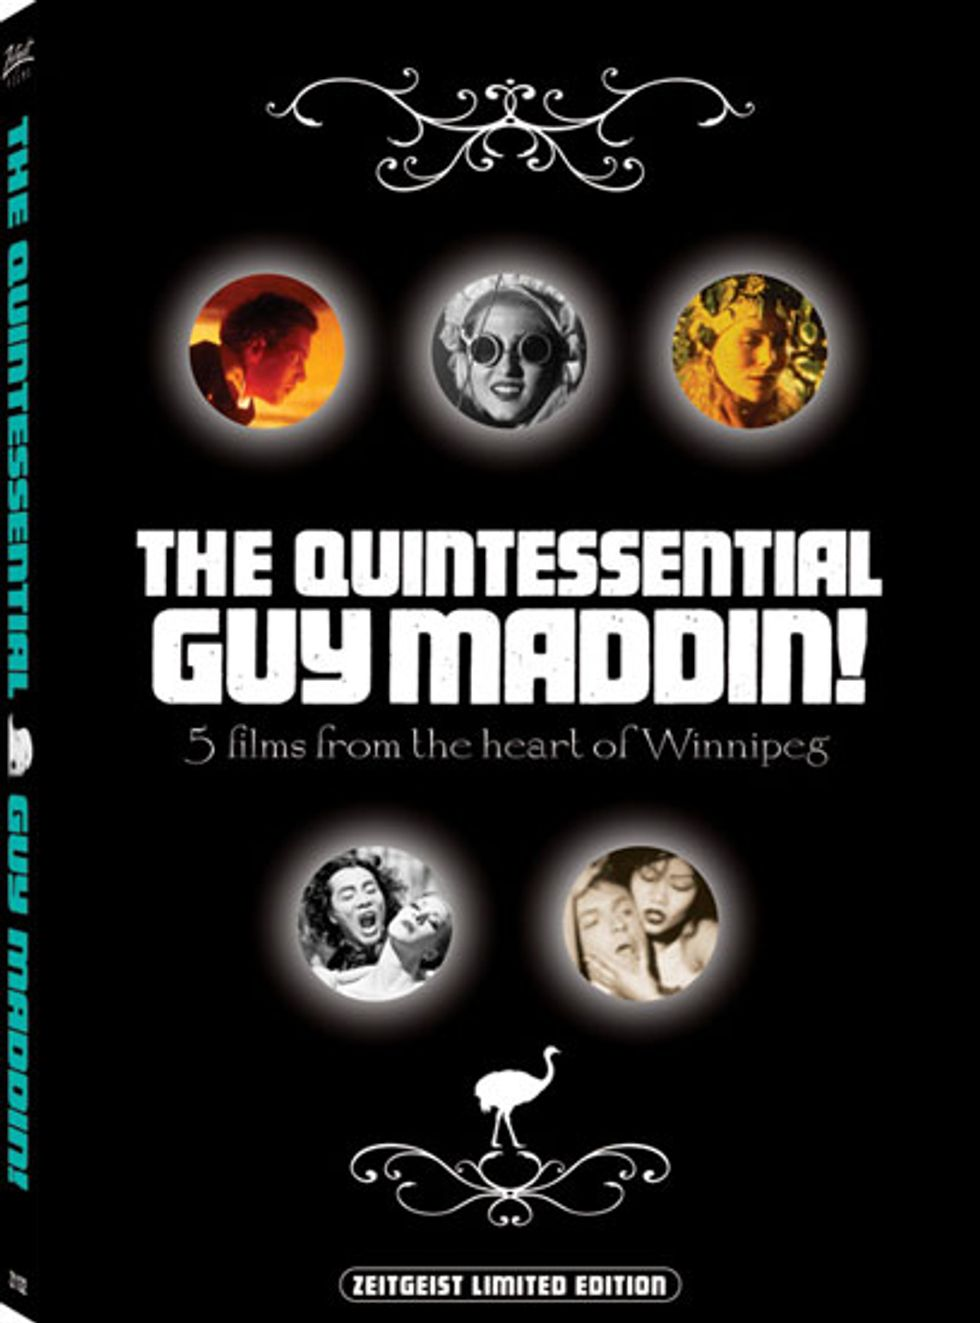 The Quintessential Guy Maddin On DVD